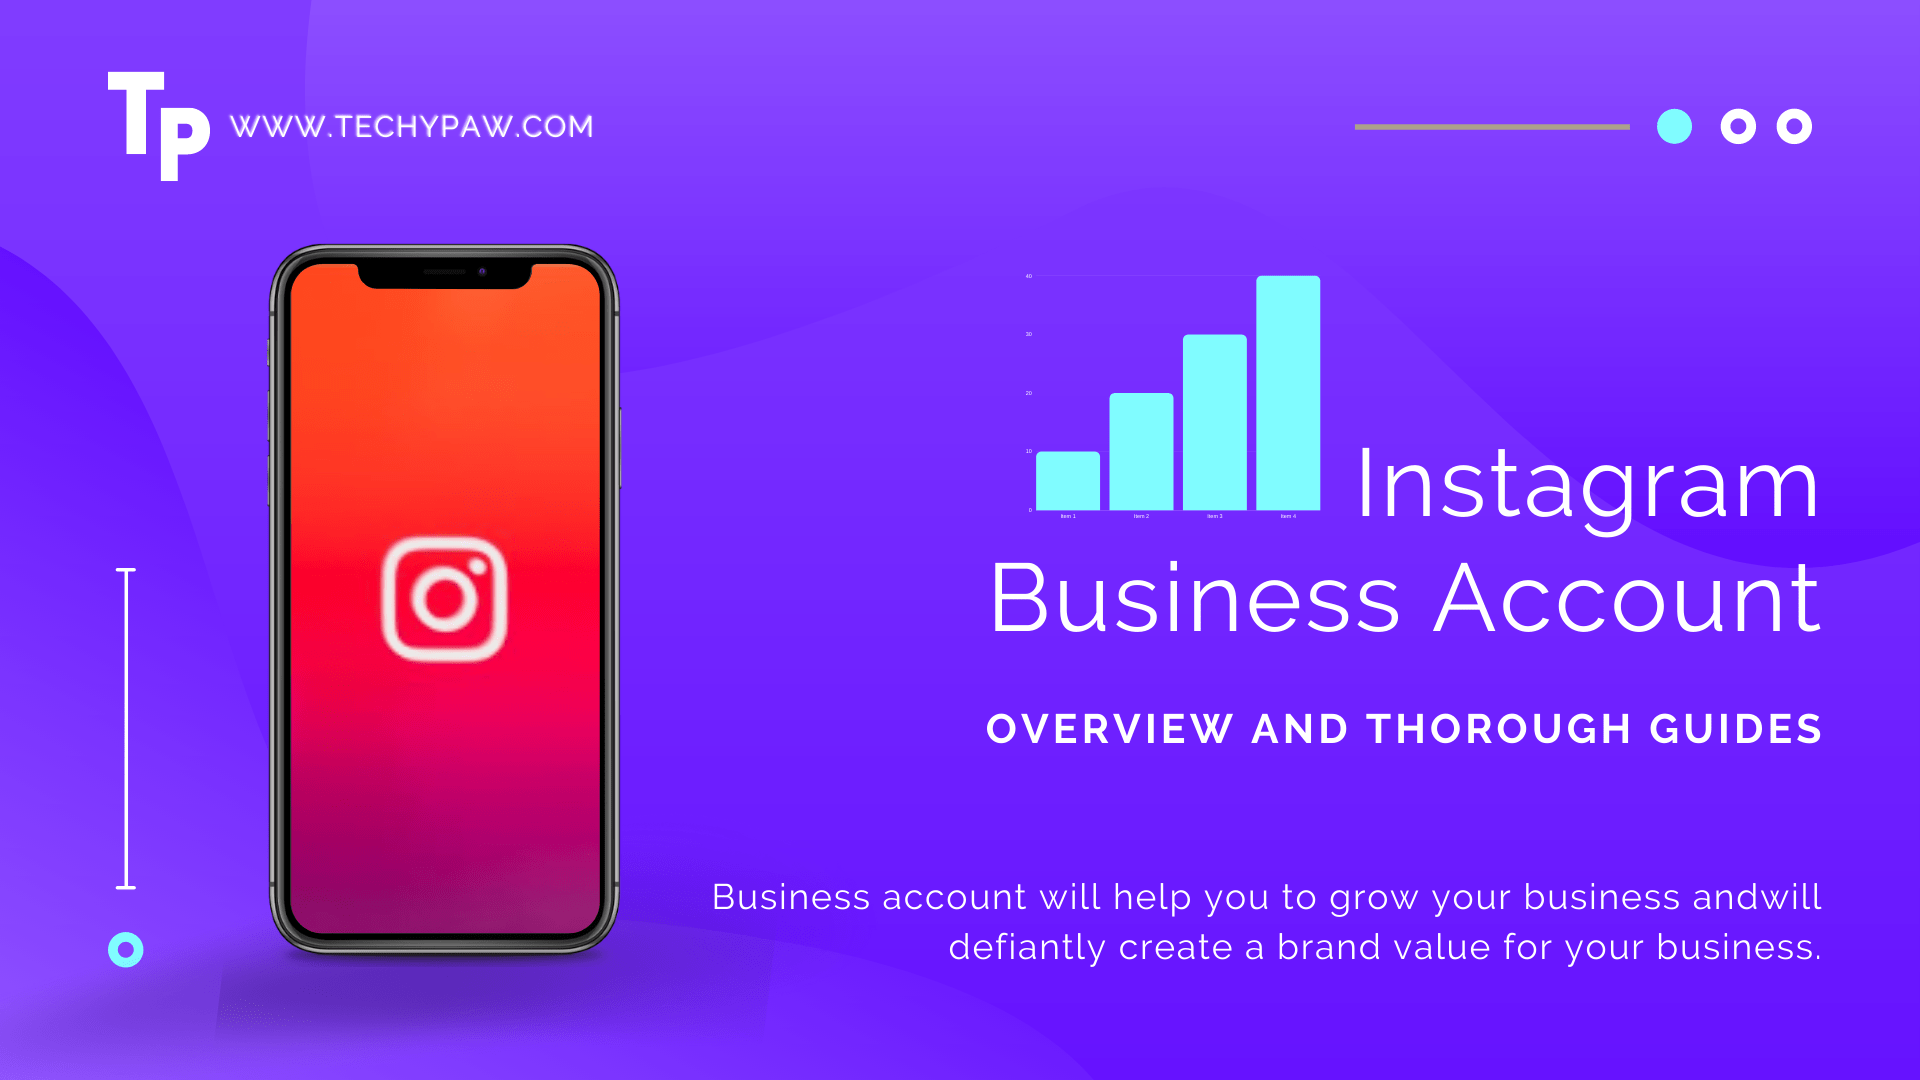 Instagram Business Account | An Overview and Thorough Guide [100% Effective]